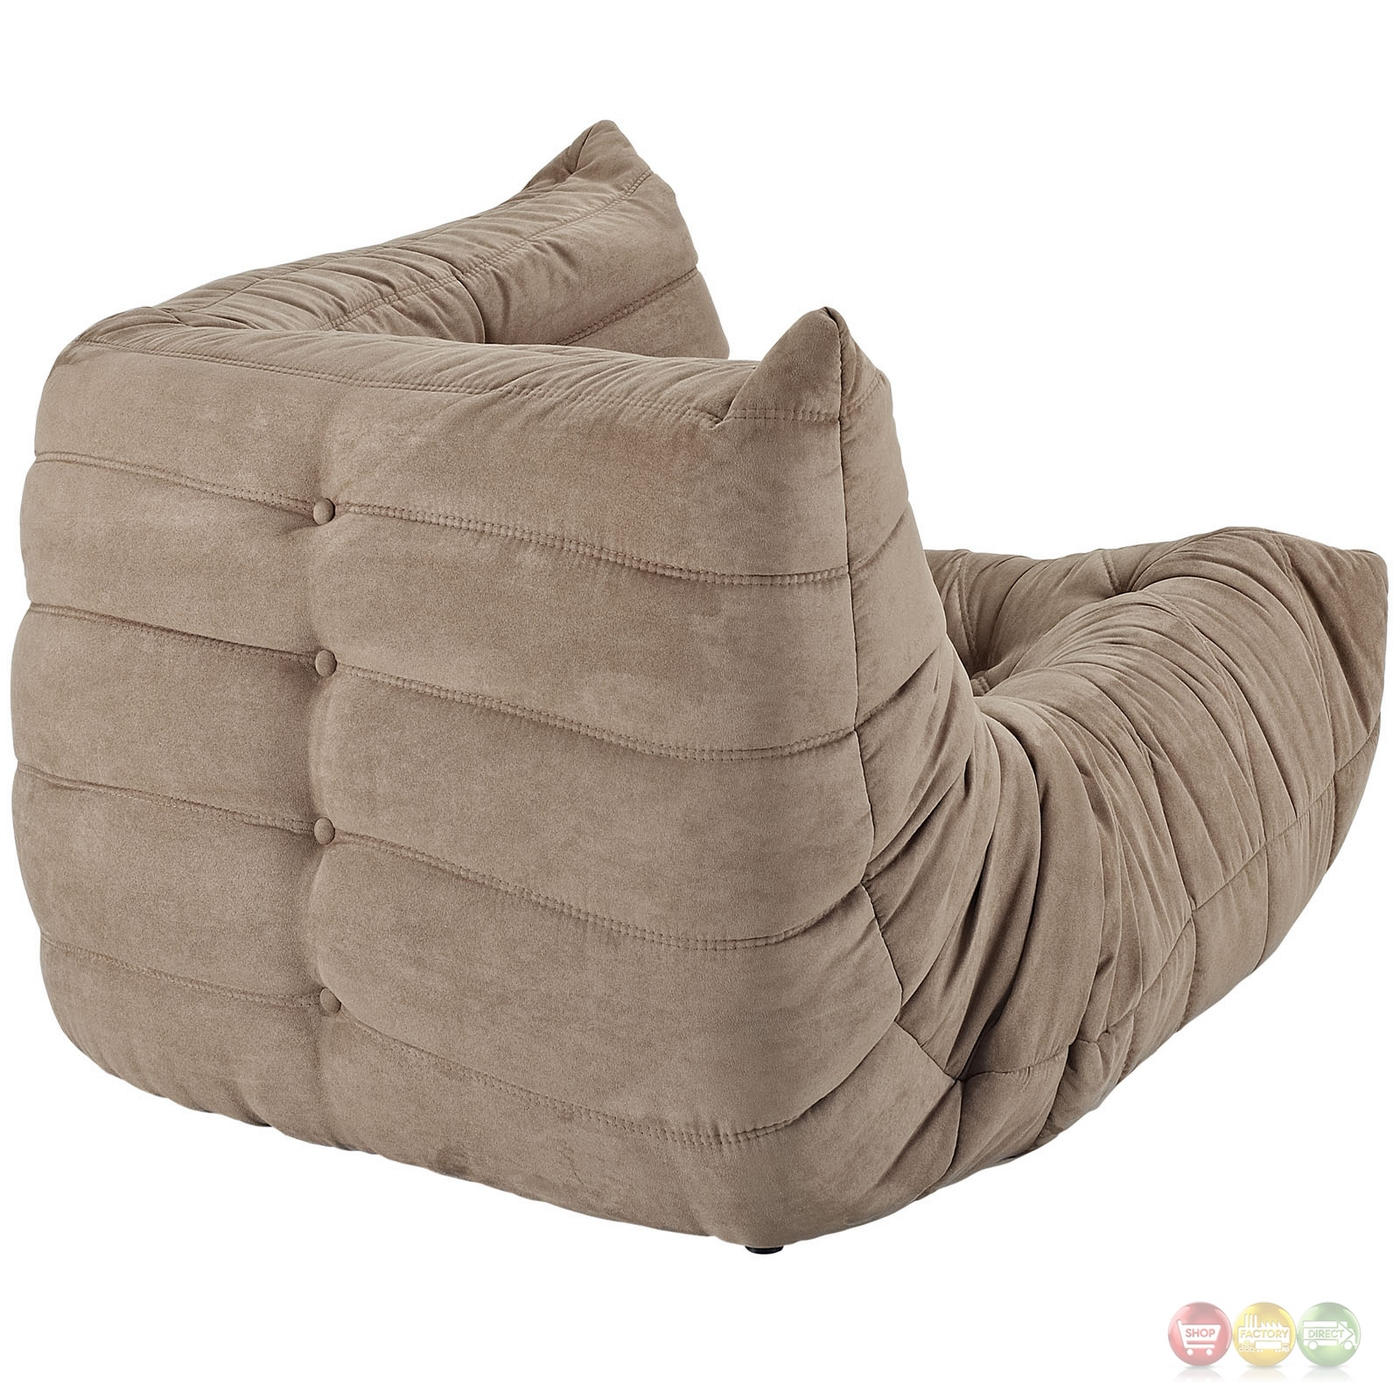 Brown Bean Bag Chair Wave Runner Contemporary Bean Bag Style Upholstered Corner